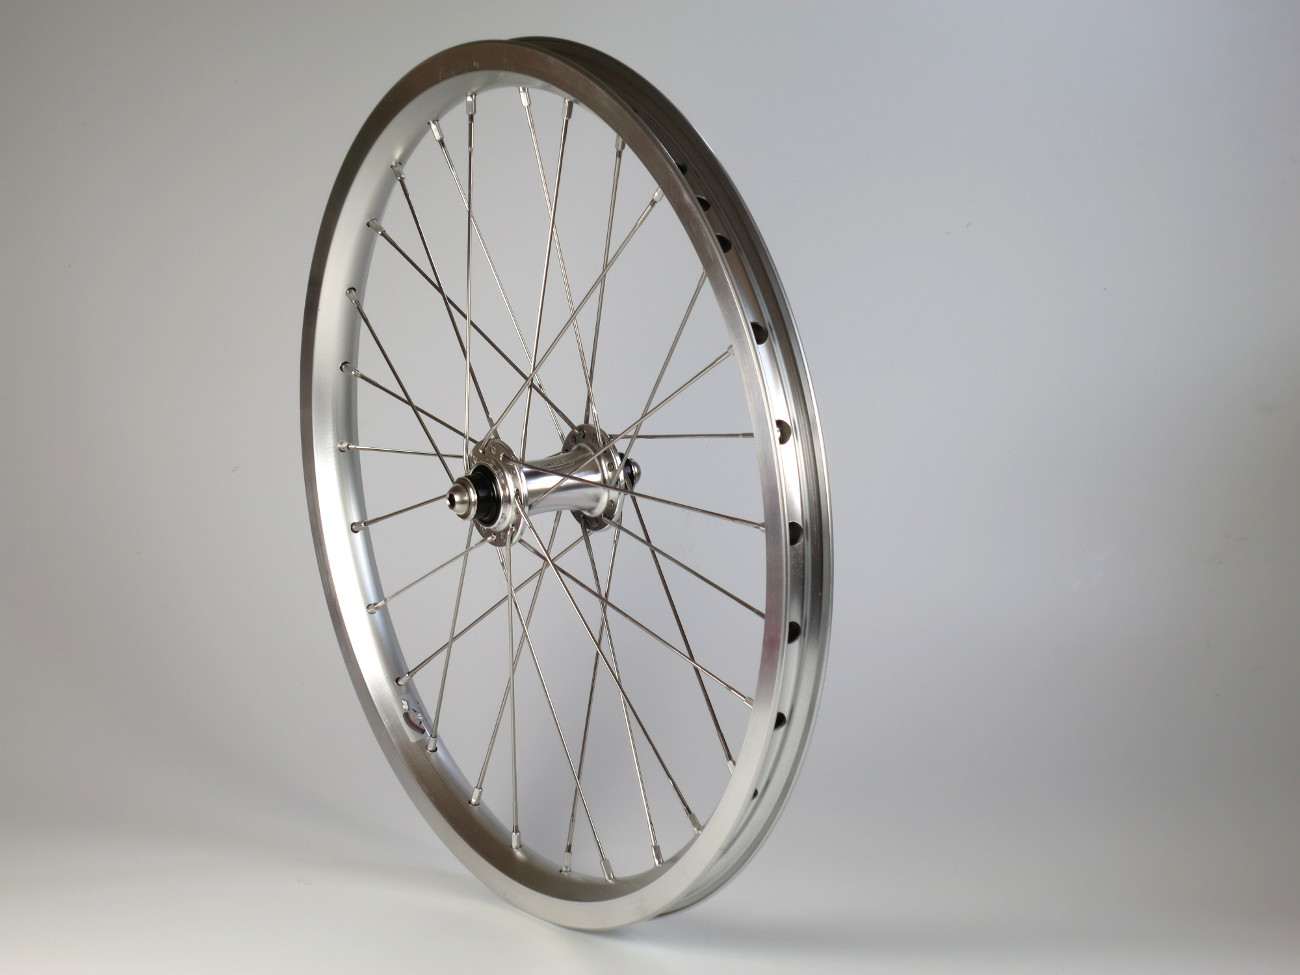 Ridea Bicycle Components - Page 5 Ridea%20x%20brompton%20silver%20full%20wheel